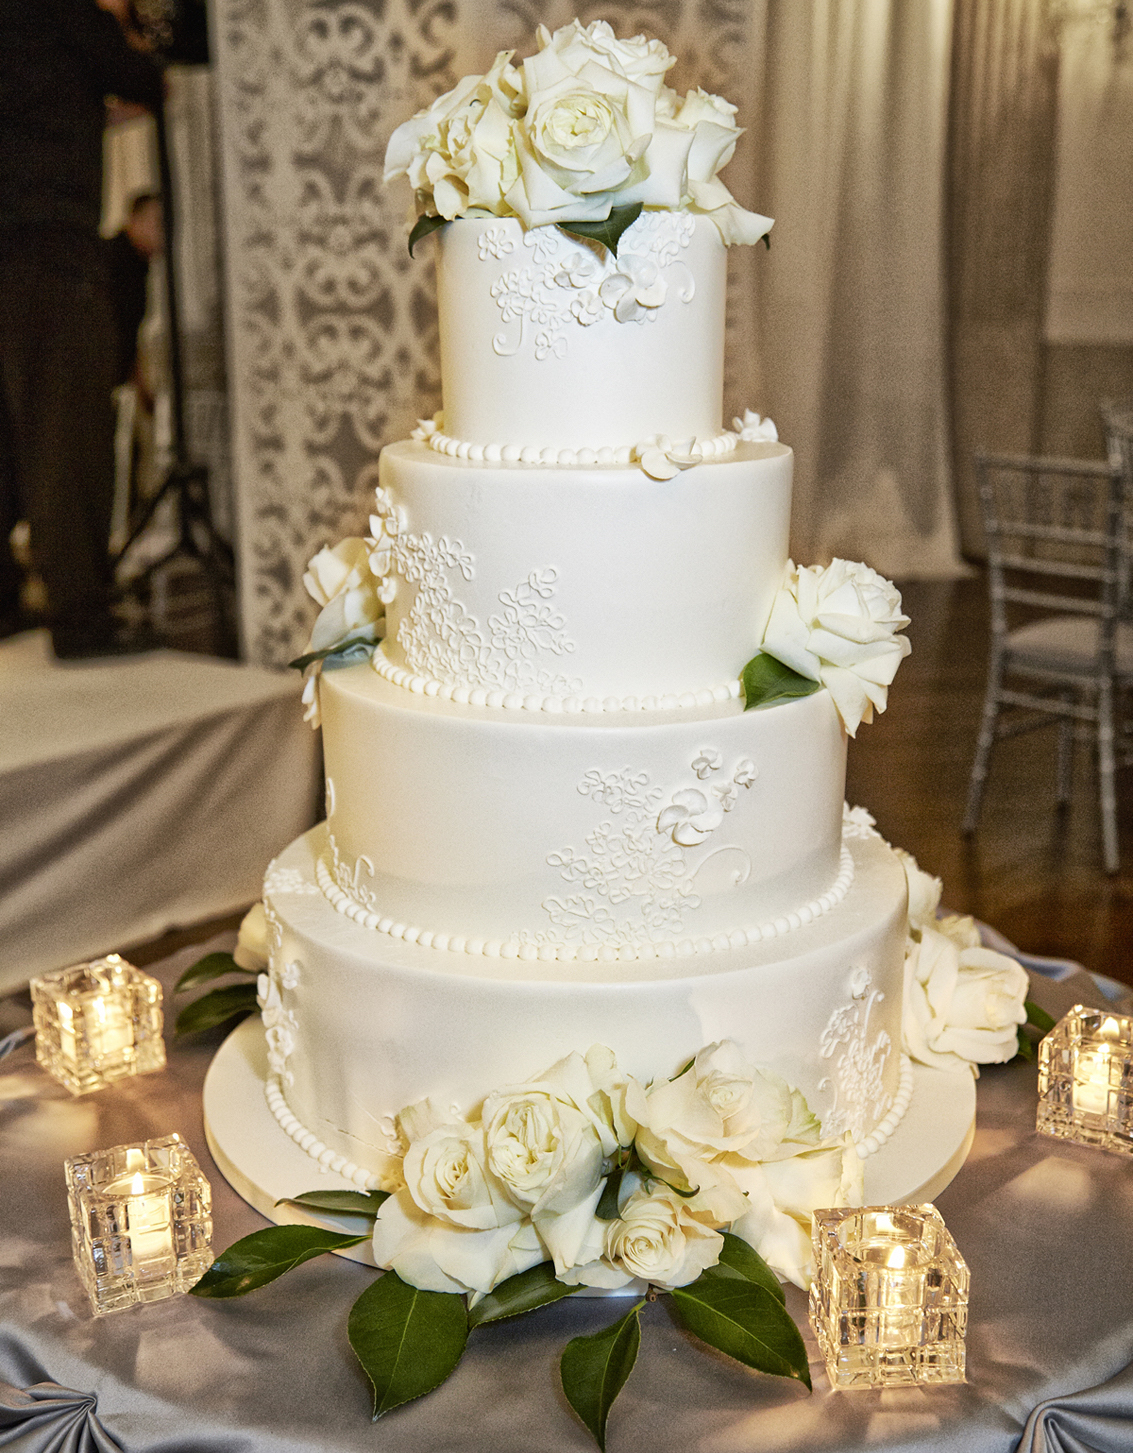 White wedding cake with lace design and fresh flower decorations